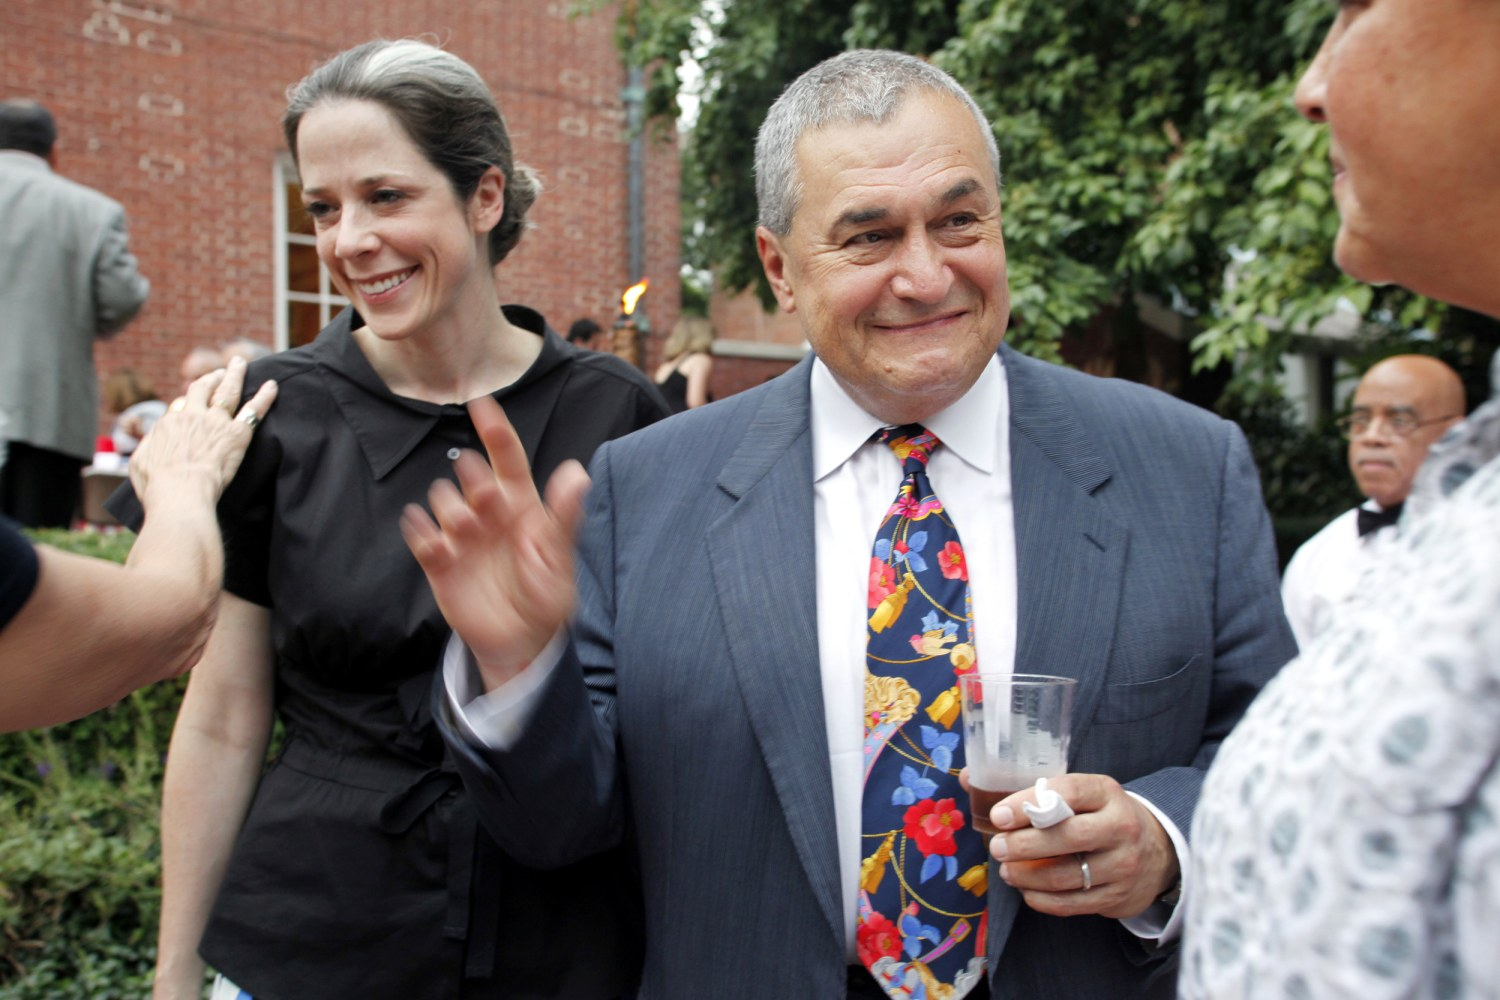 How much trouble is Tony Podesta in?